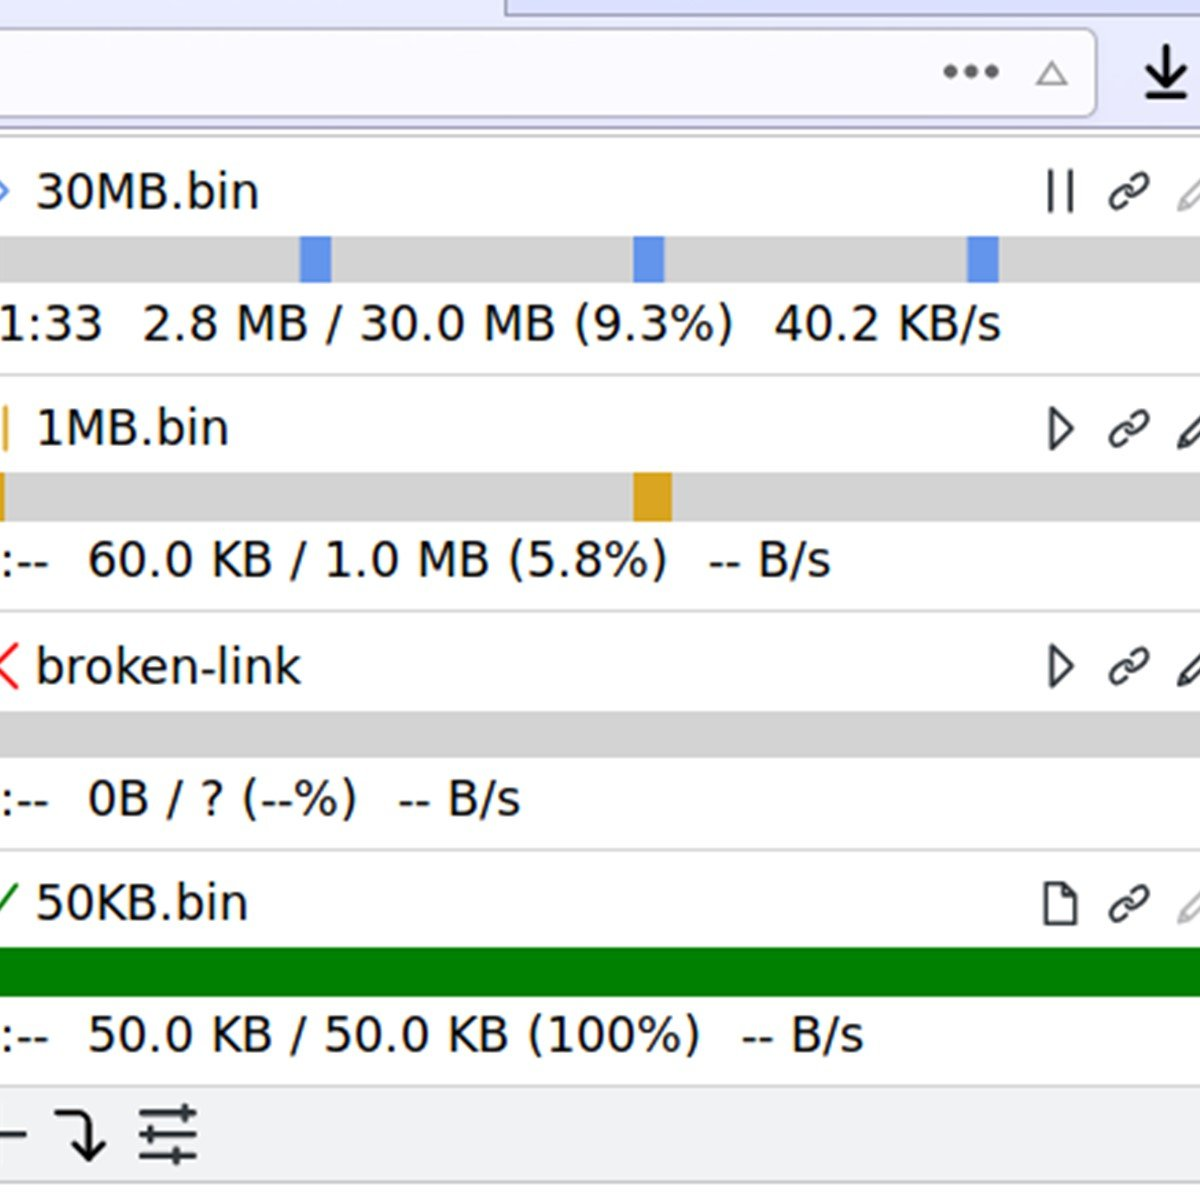 Multithreaded Download Manager Alternatives and Similar